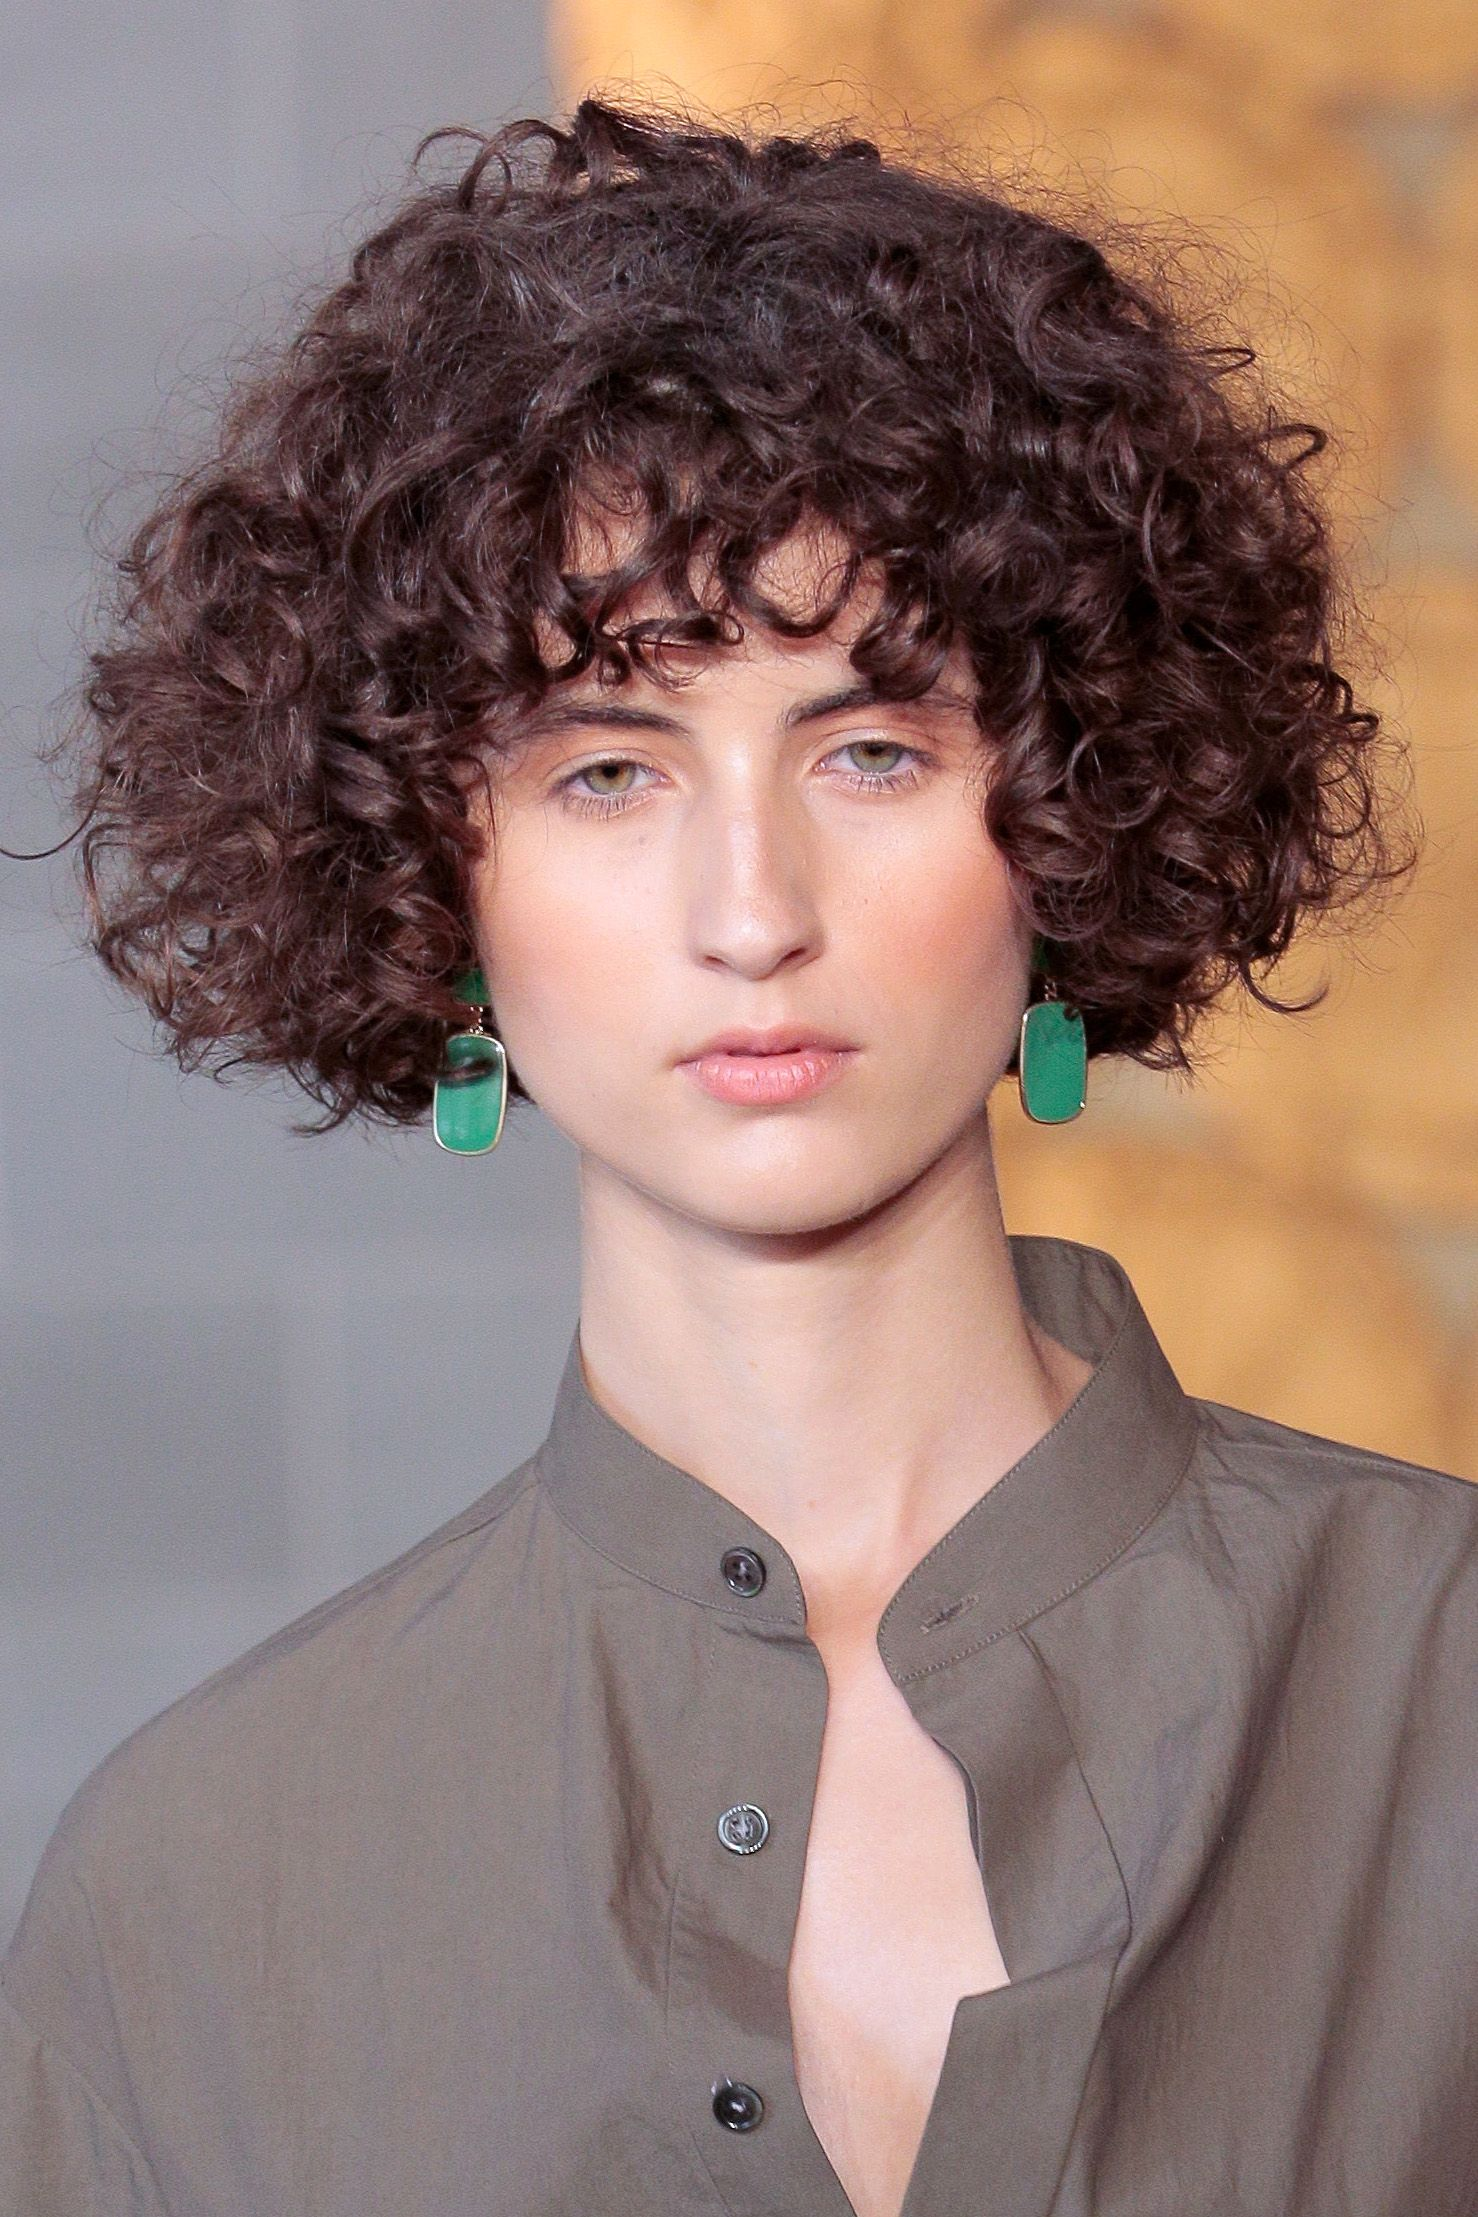 19 Celebrity Short Curly Hair Ideas - Short Haircuts and Hairstyles ...